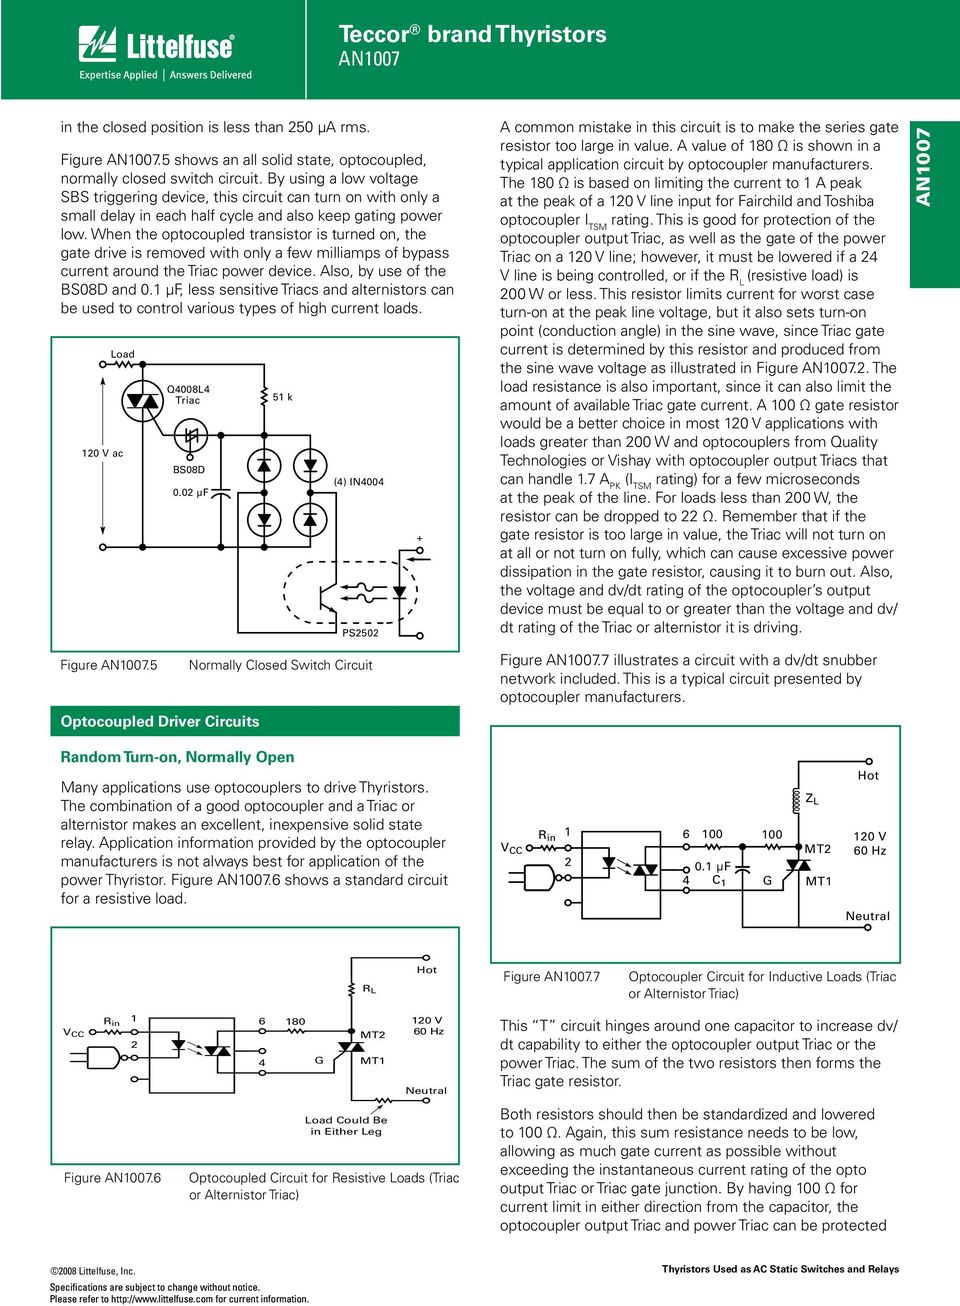 Teccor Brand Thyristors An Pdf Dc Control For Triacs When The Optocoupled Transistor Is Turned On Gate Drive Removed With Only A